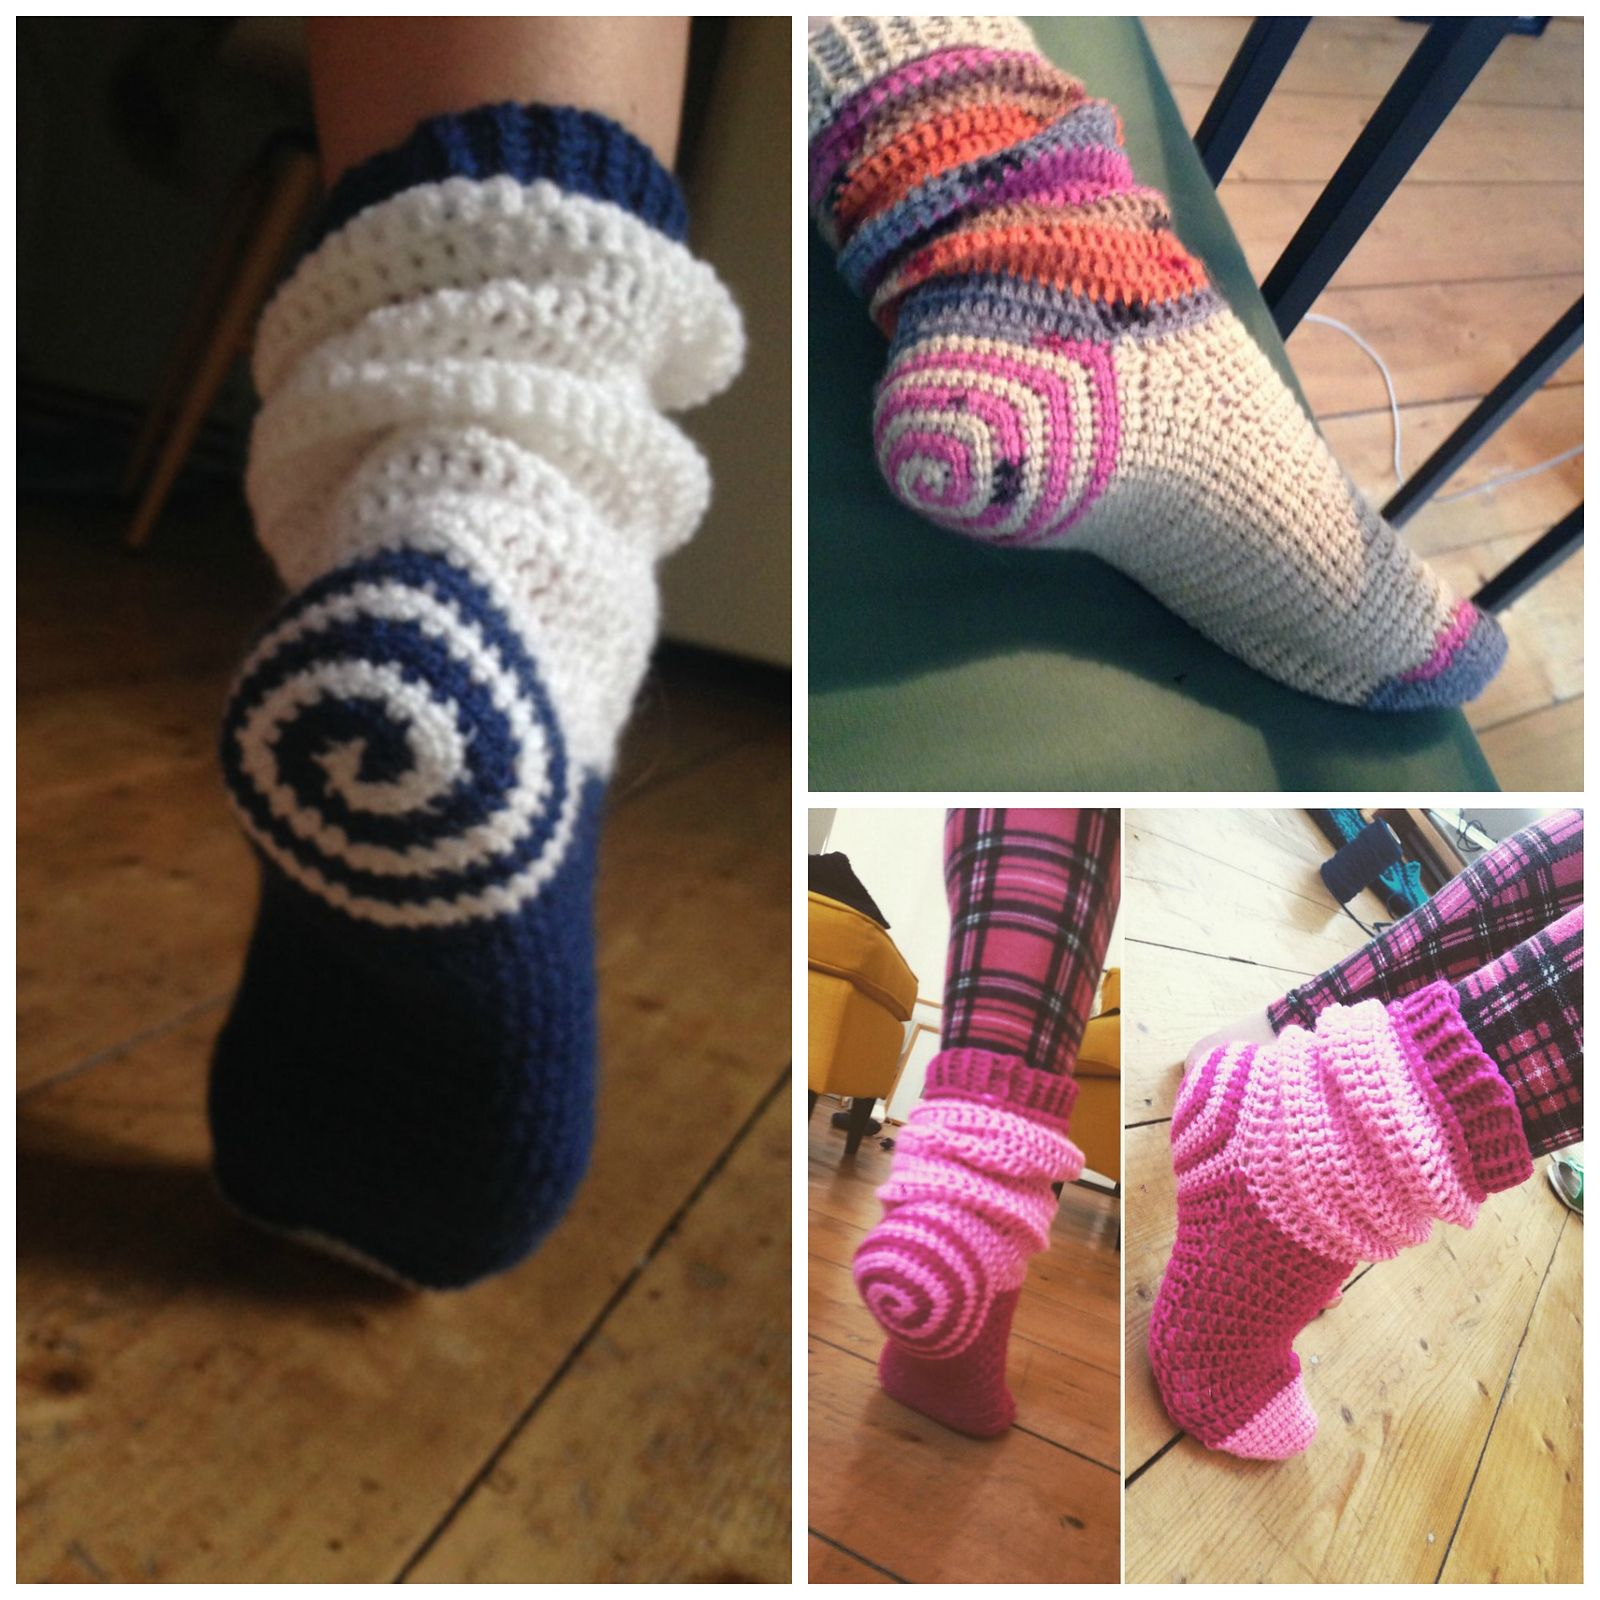 Ravelry: Spiral Socks by Ooh I love it! | Haakidee | Pinterest ...